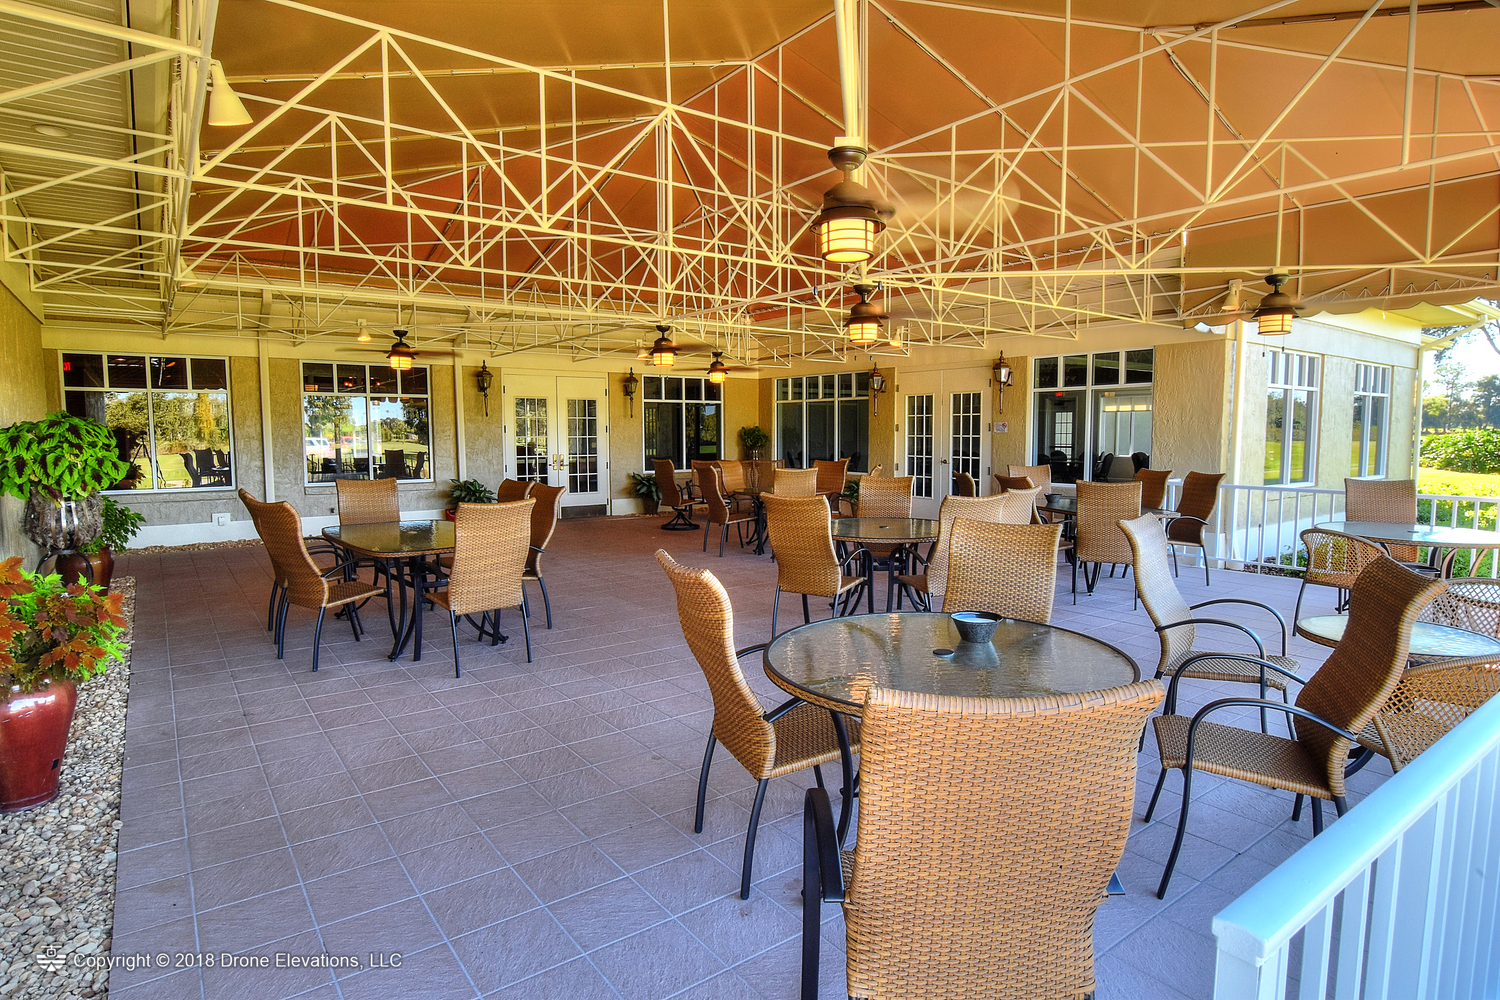 The outdoor patio at the Cypresswood clubhouse